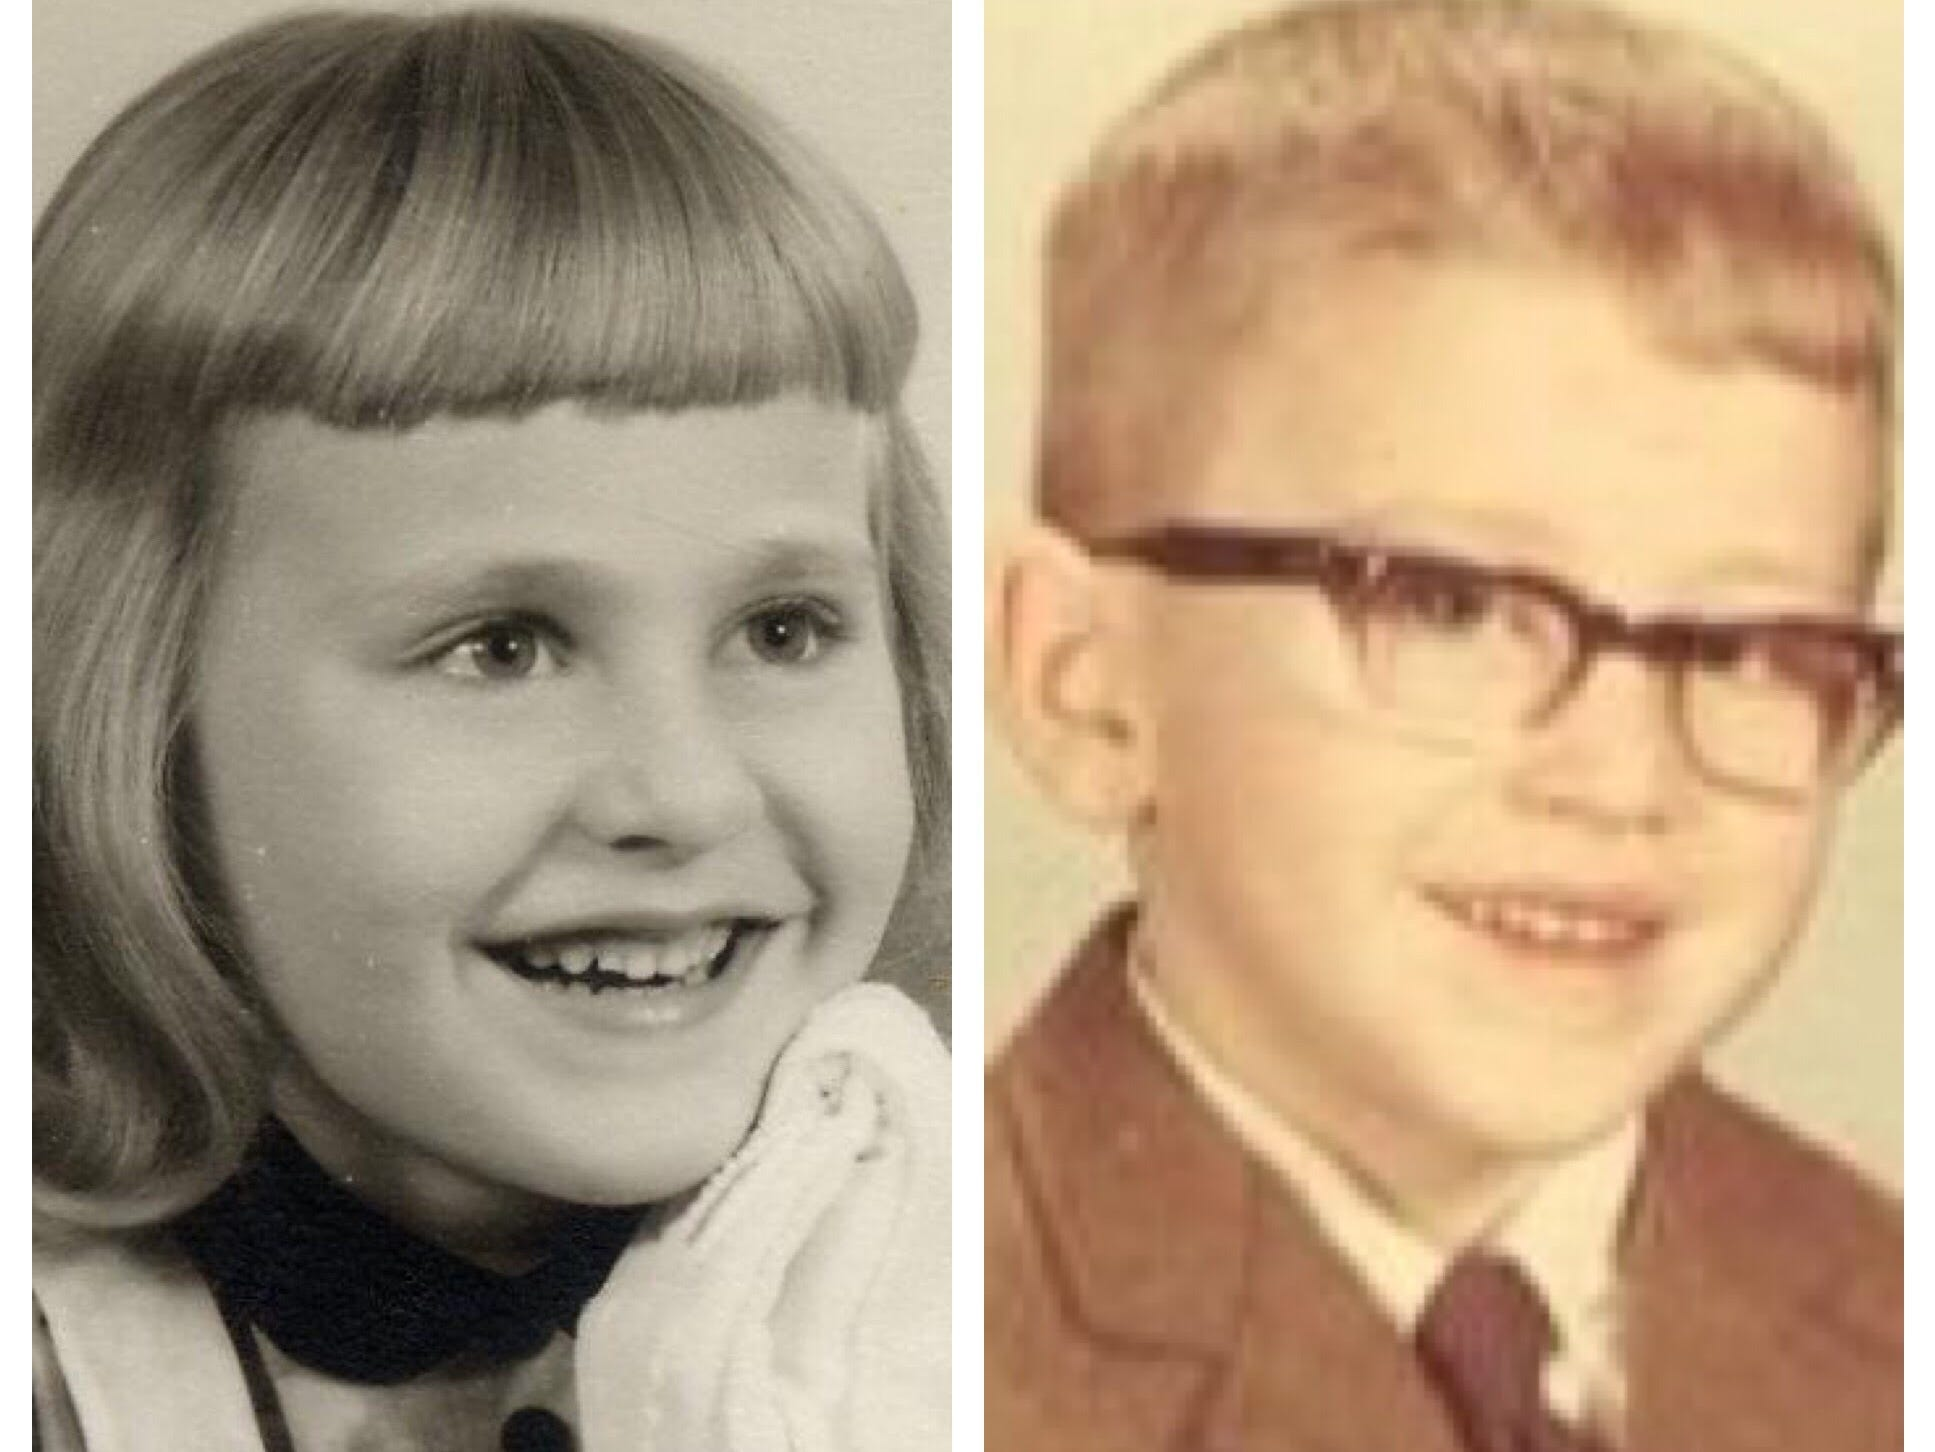 A DNA home test told Katherine Hamilton and Kris Kaufmann, here shown as kids, they are siblings.